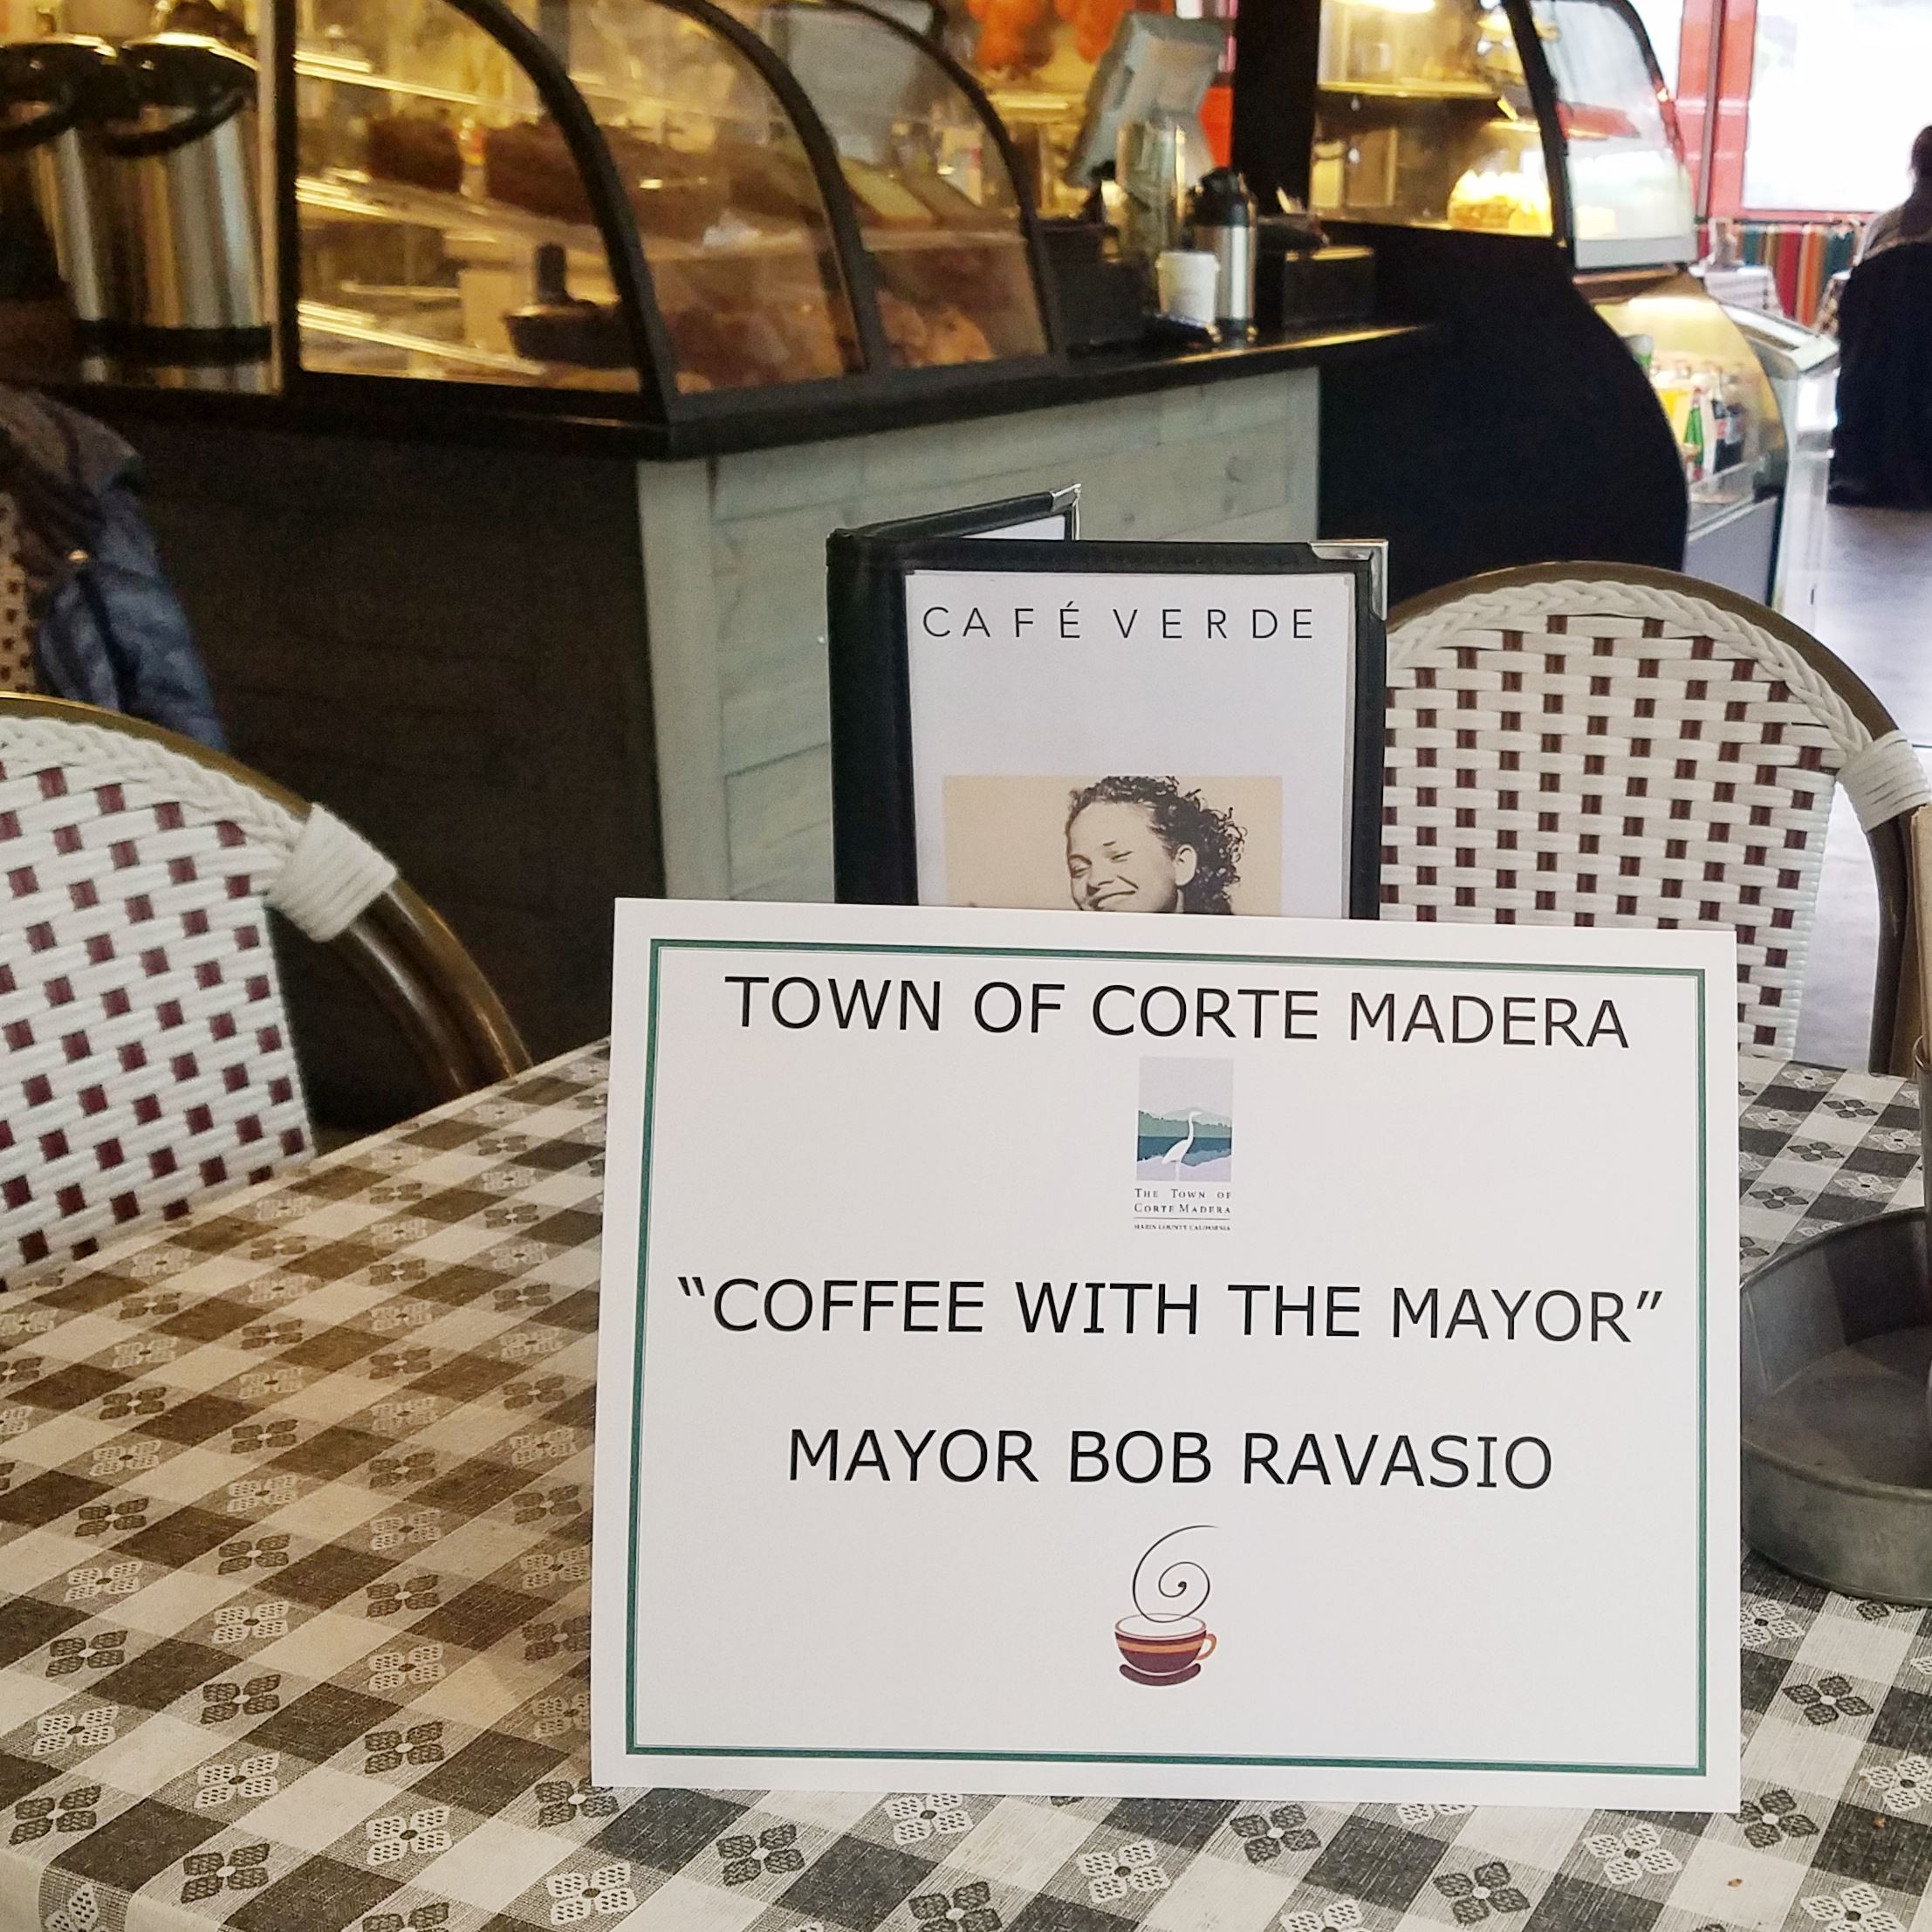 Coffee With The Mayor Jan 19 10am Cafe Verde